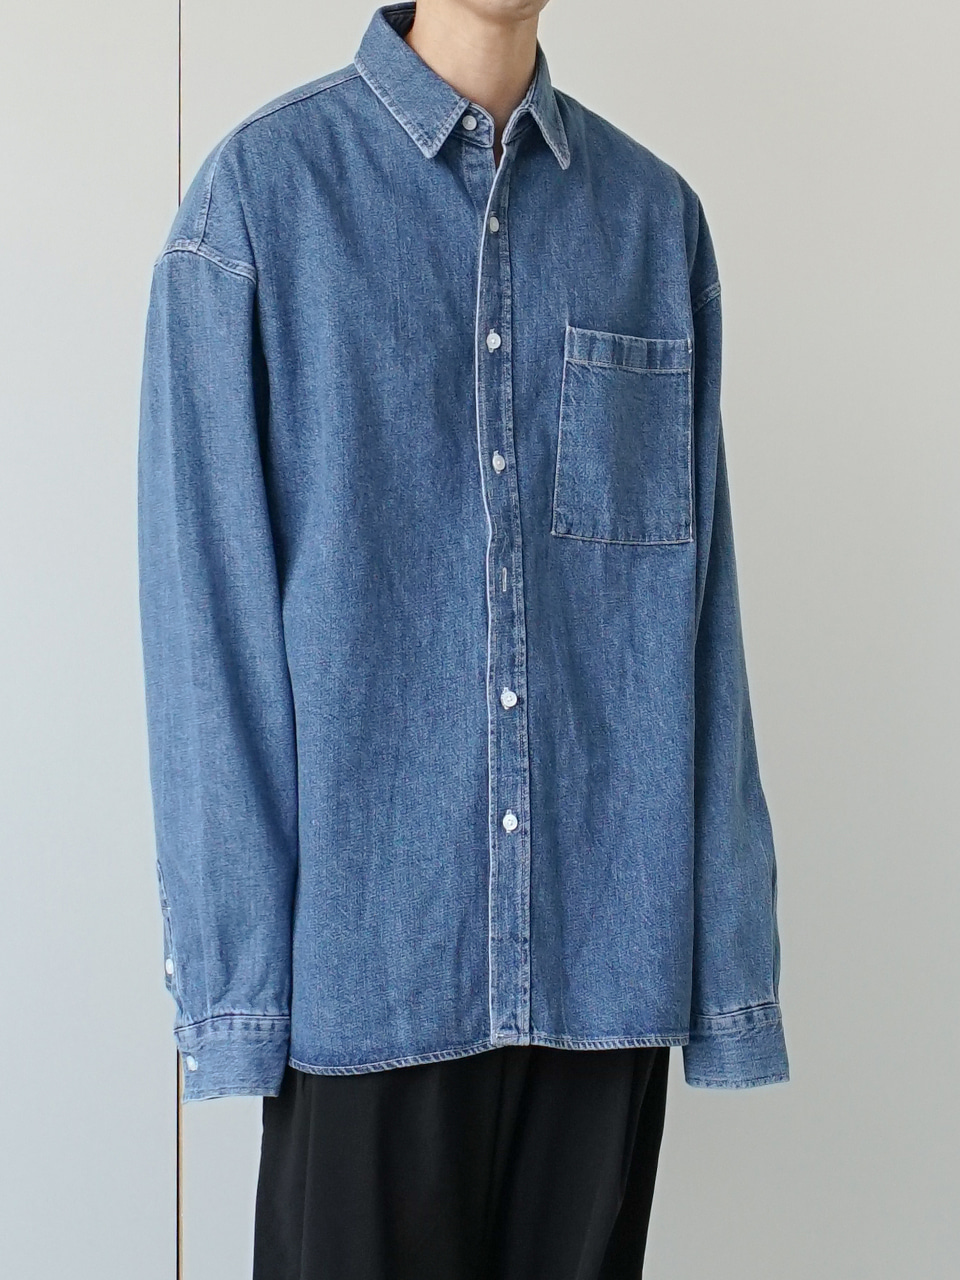 Retro Over Denim Shirt